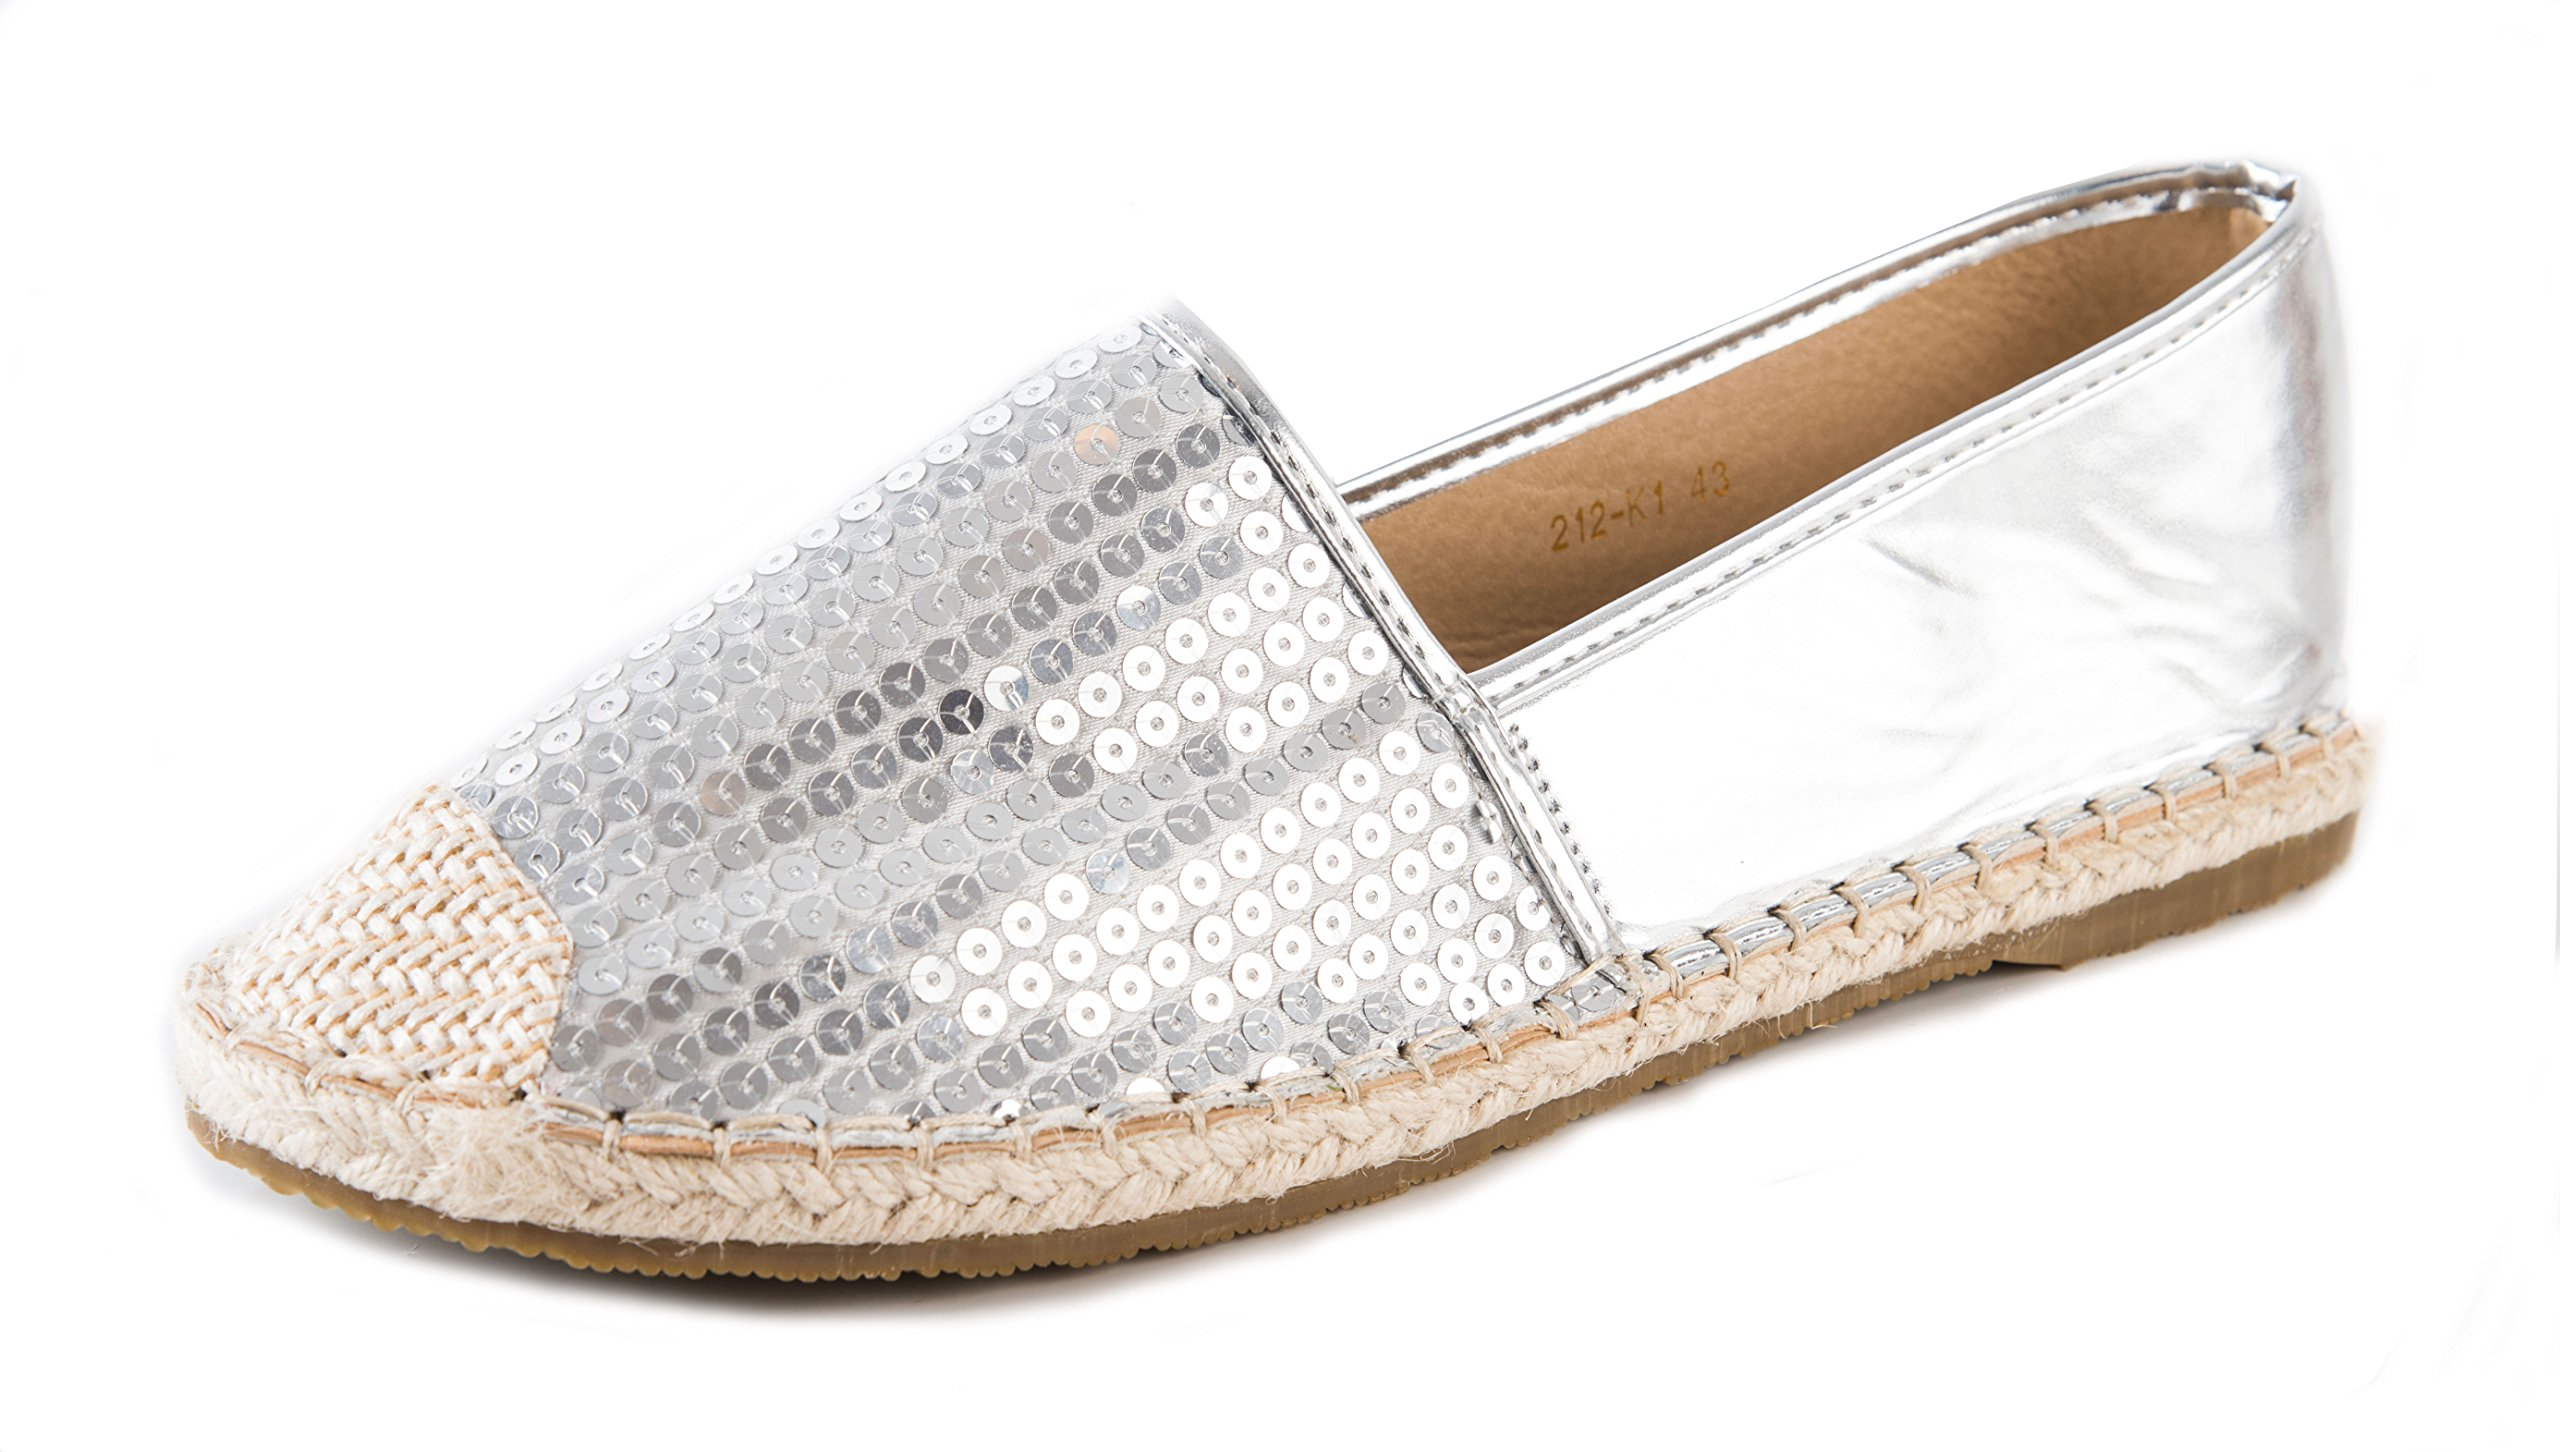 Aisun Women's Sparkly Sequins Cap Toe Low Cut Driving Slip-on Espadrilles Flats Shoes (Silver, 7 B(M) US)